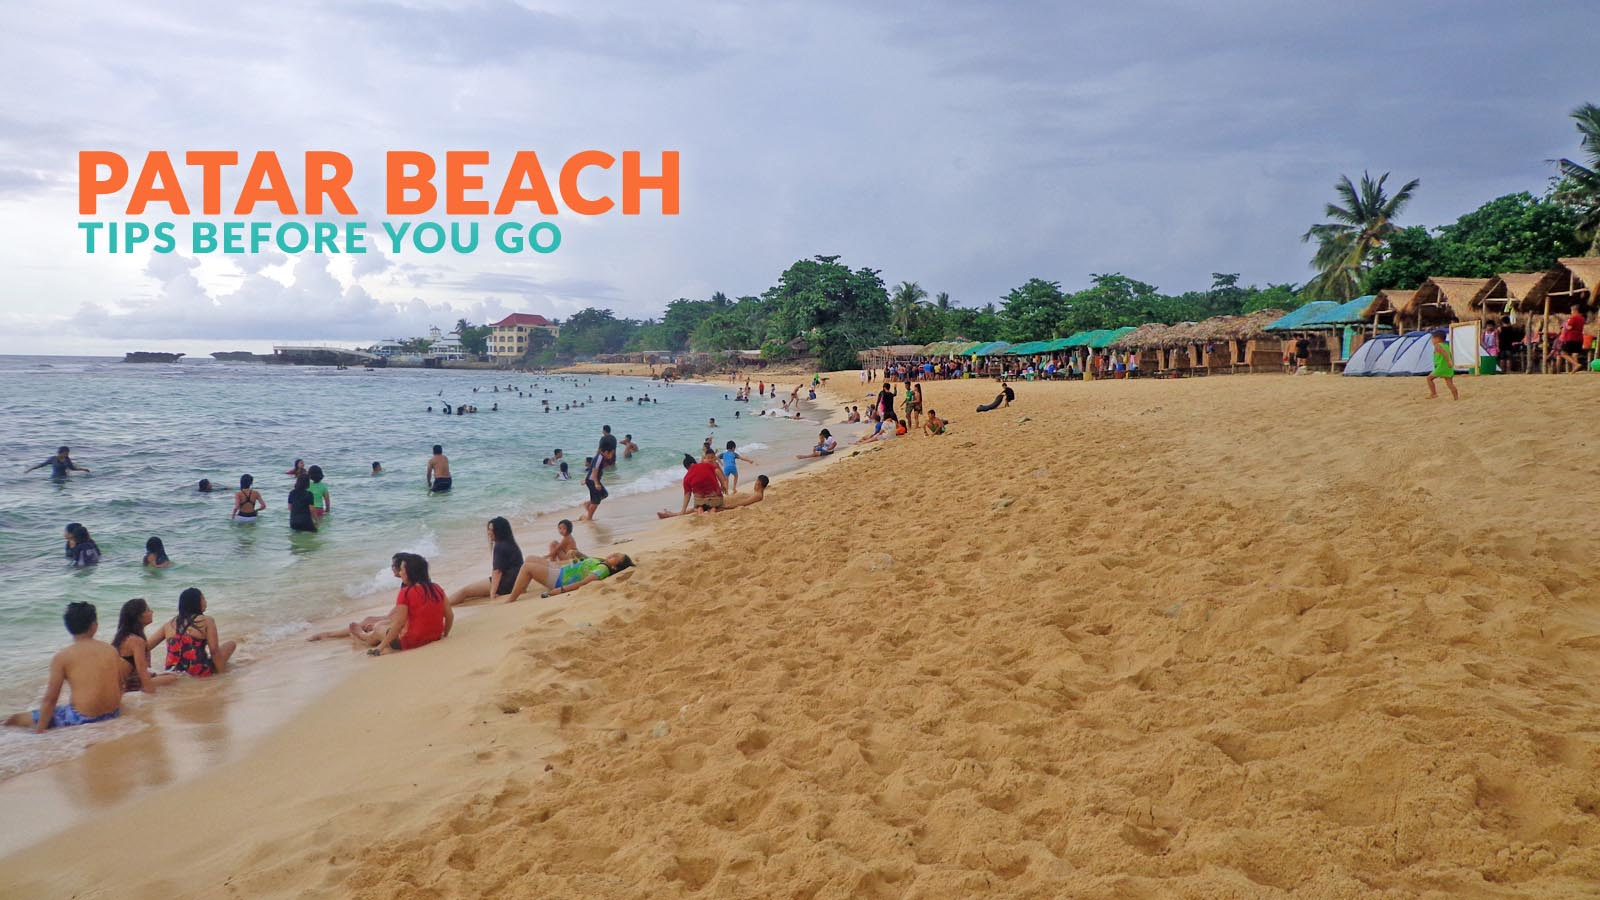 Patar Beach Bolinao Important Travel Tips Philippine